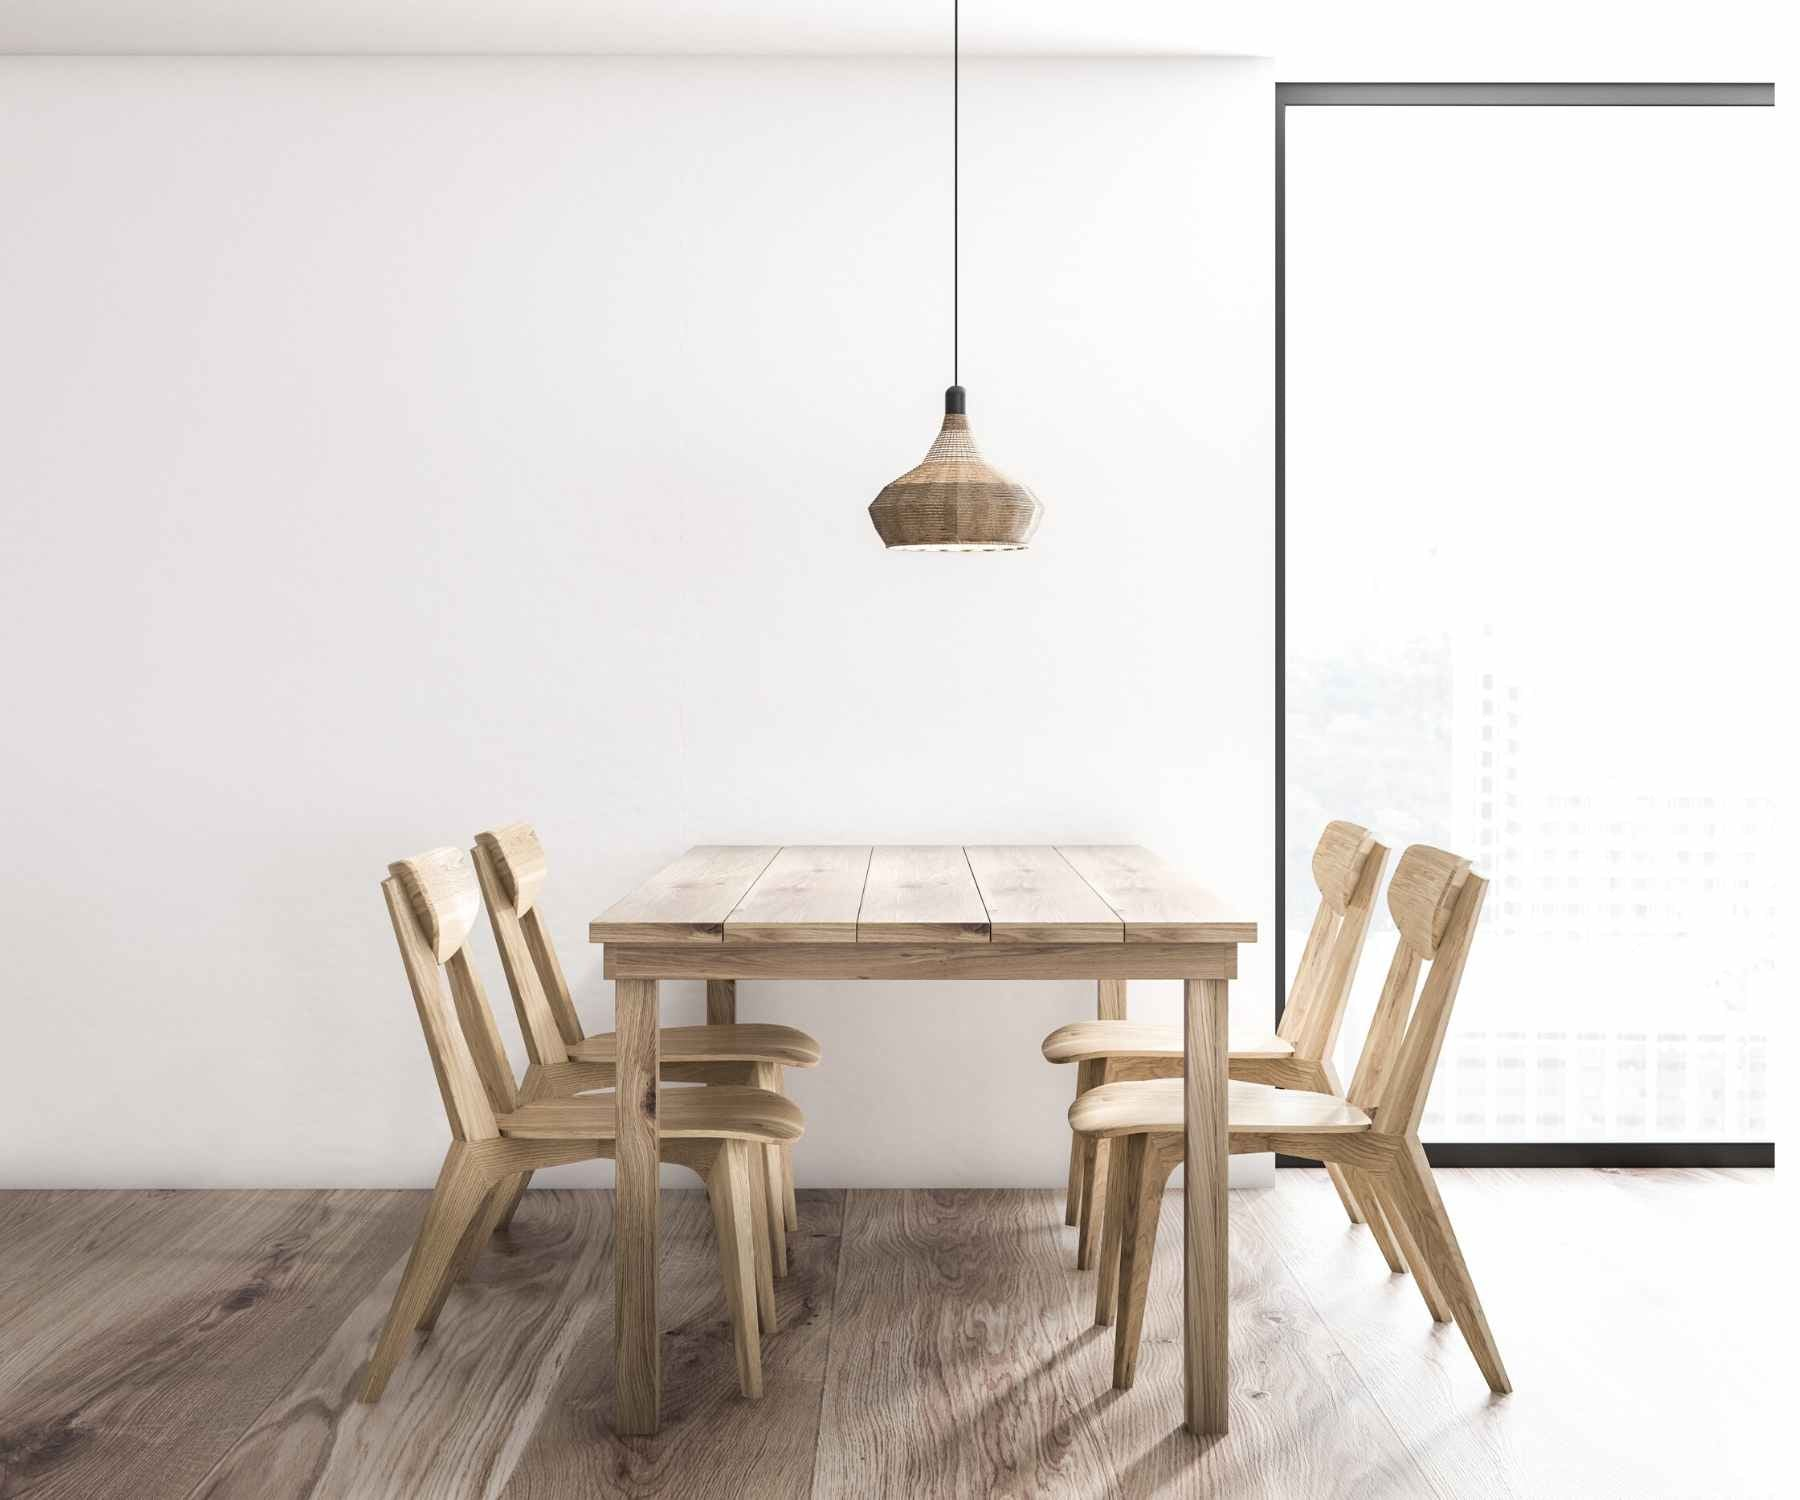 Wooden dining table and chairs in white minimalist room with pendant light